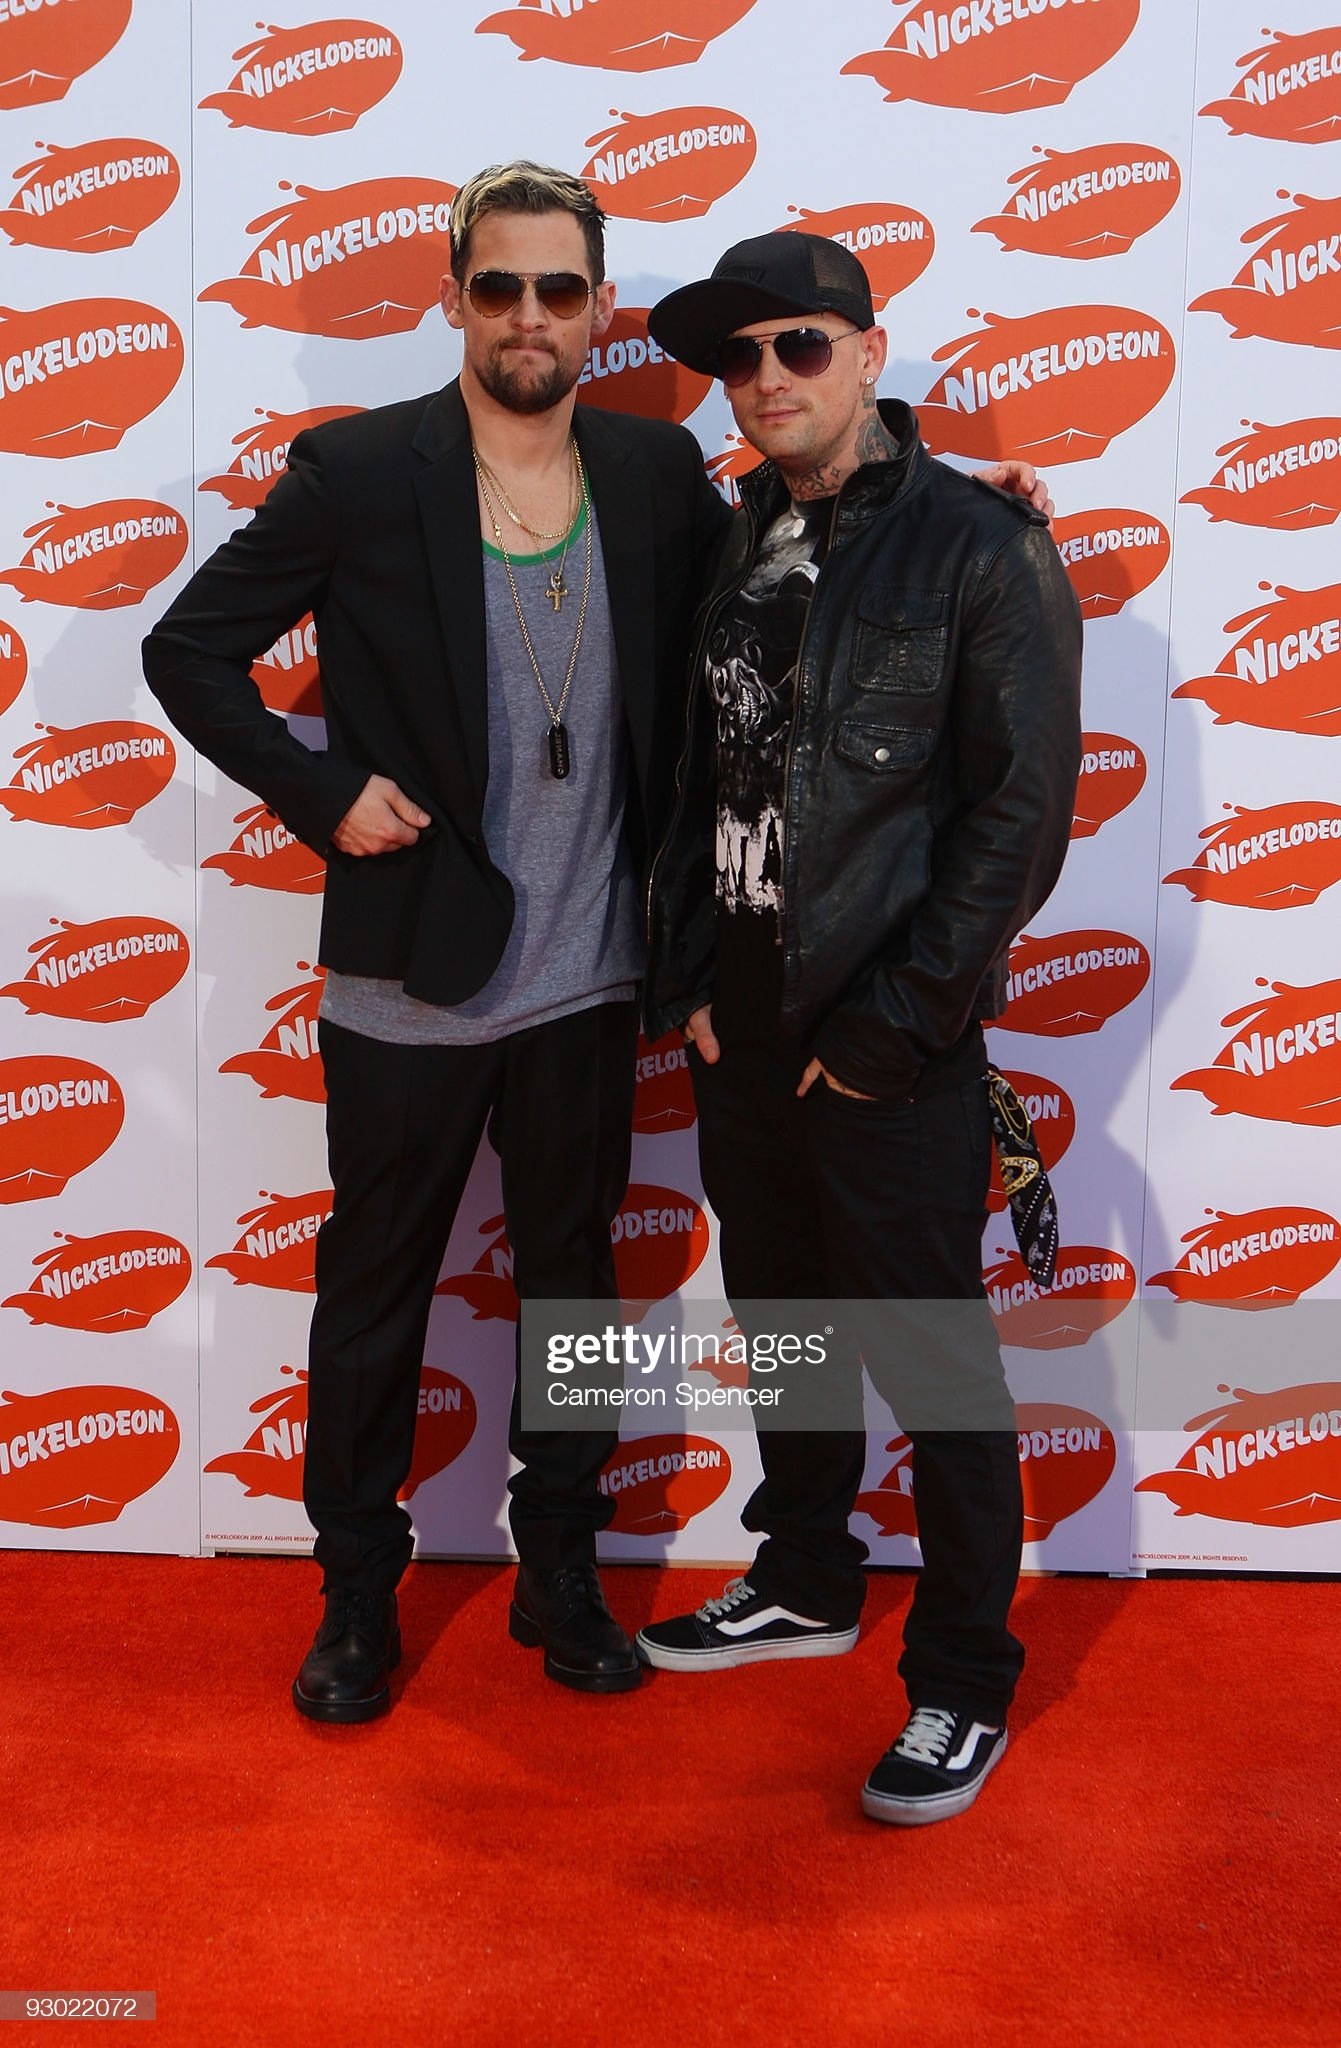 ¿Cuánto mide Benji Madden? - Altura - Real height Musicians-joel-and-benji-madden-of-good-charlotte-arrive-for-the-picture-id93022072?s=2048x2048